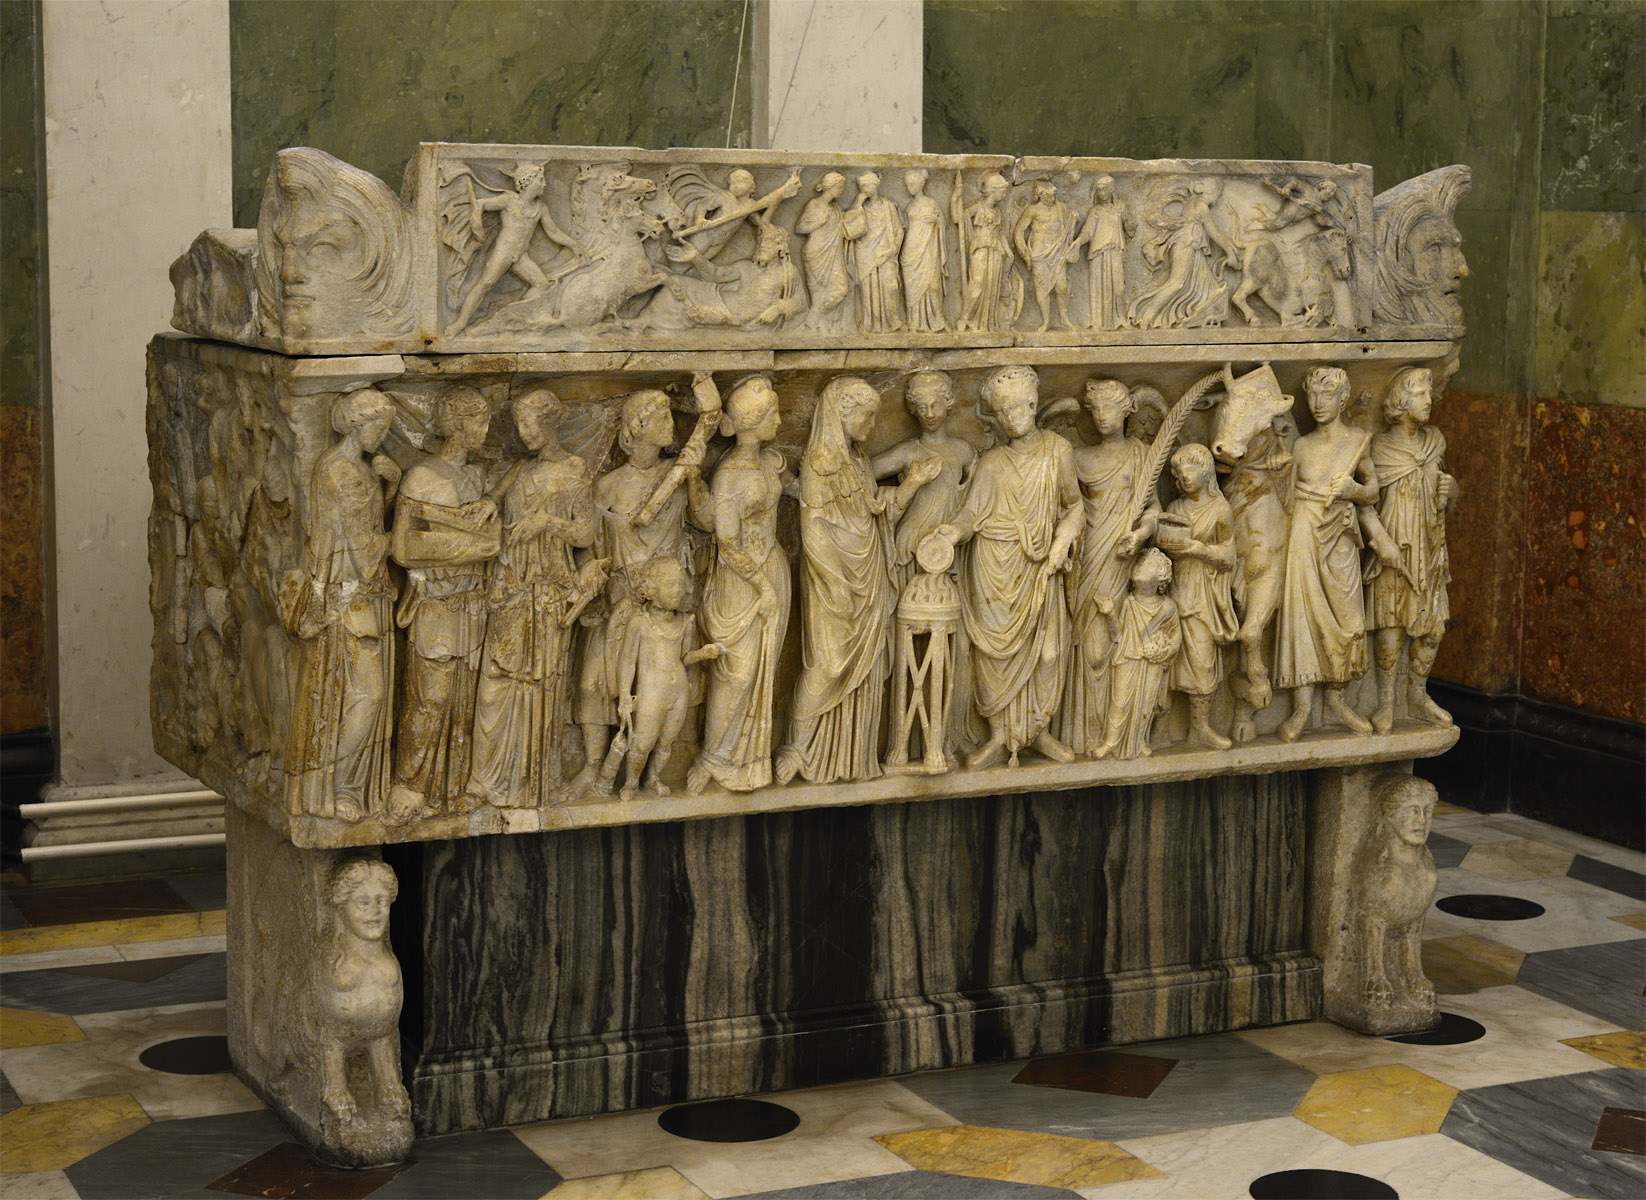 Sarcophagus with a matrimonial ceremony (so-called wedding or marriage sarcophagus, or a sarcophagus of the spouses). Marble. 3rd cent. CE. Inv. No. A 433. Saint Petersburg, The State Hermitage Museum